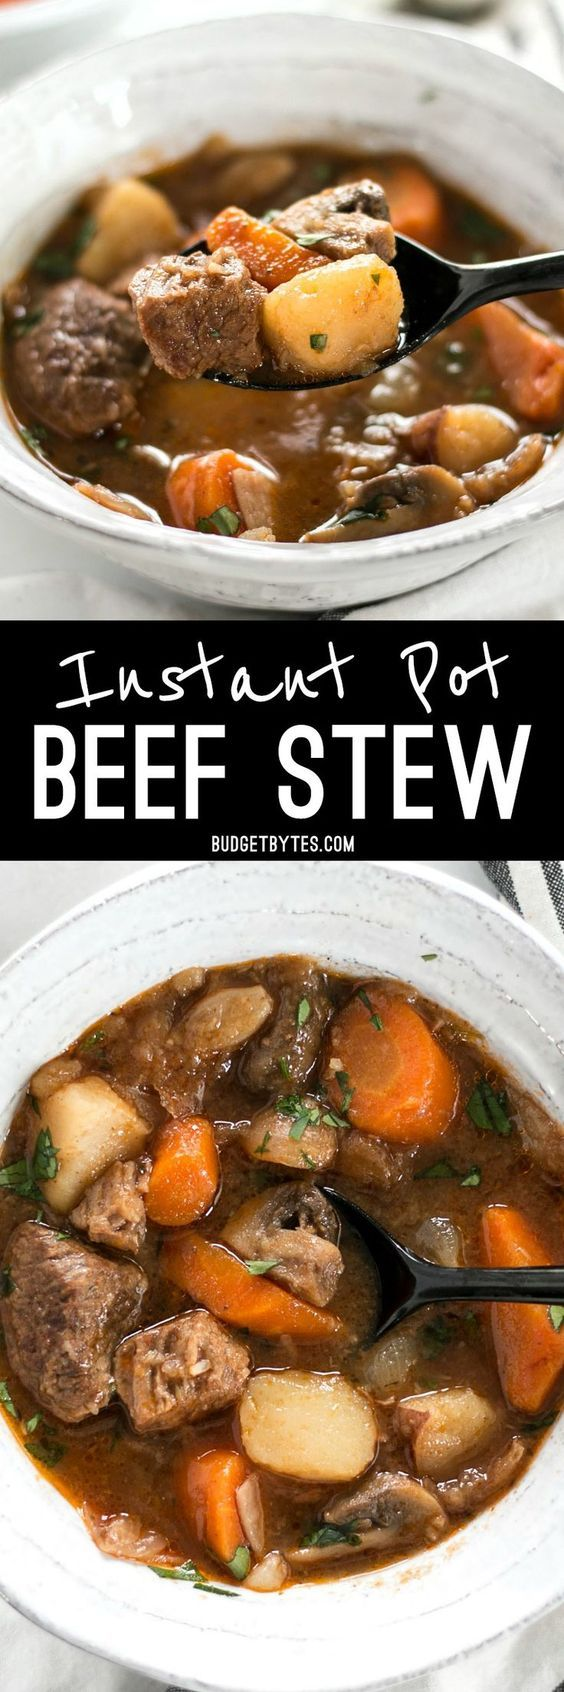 This Instant Pot Beef Stew is incredibly fast and easy, but is packed with slow-cooked flavor. @budgetbytes